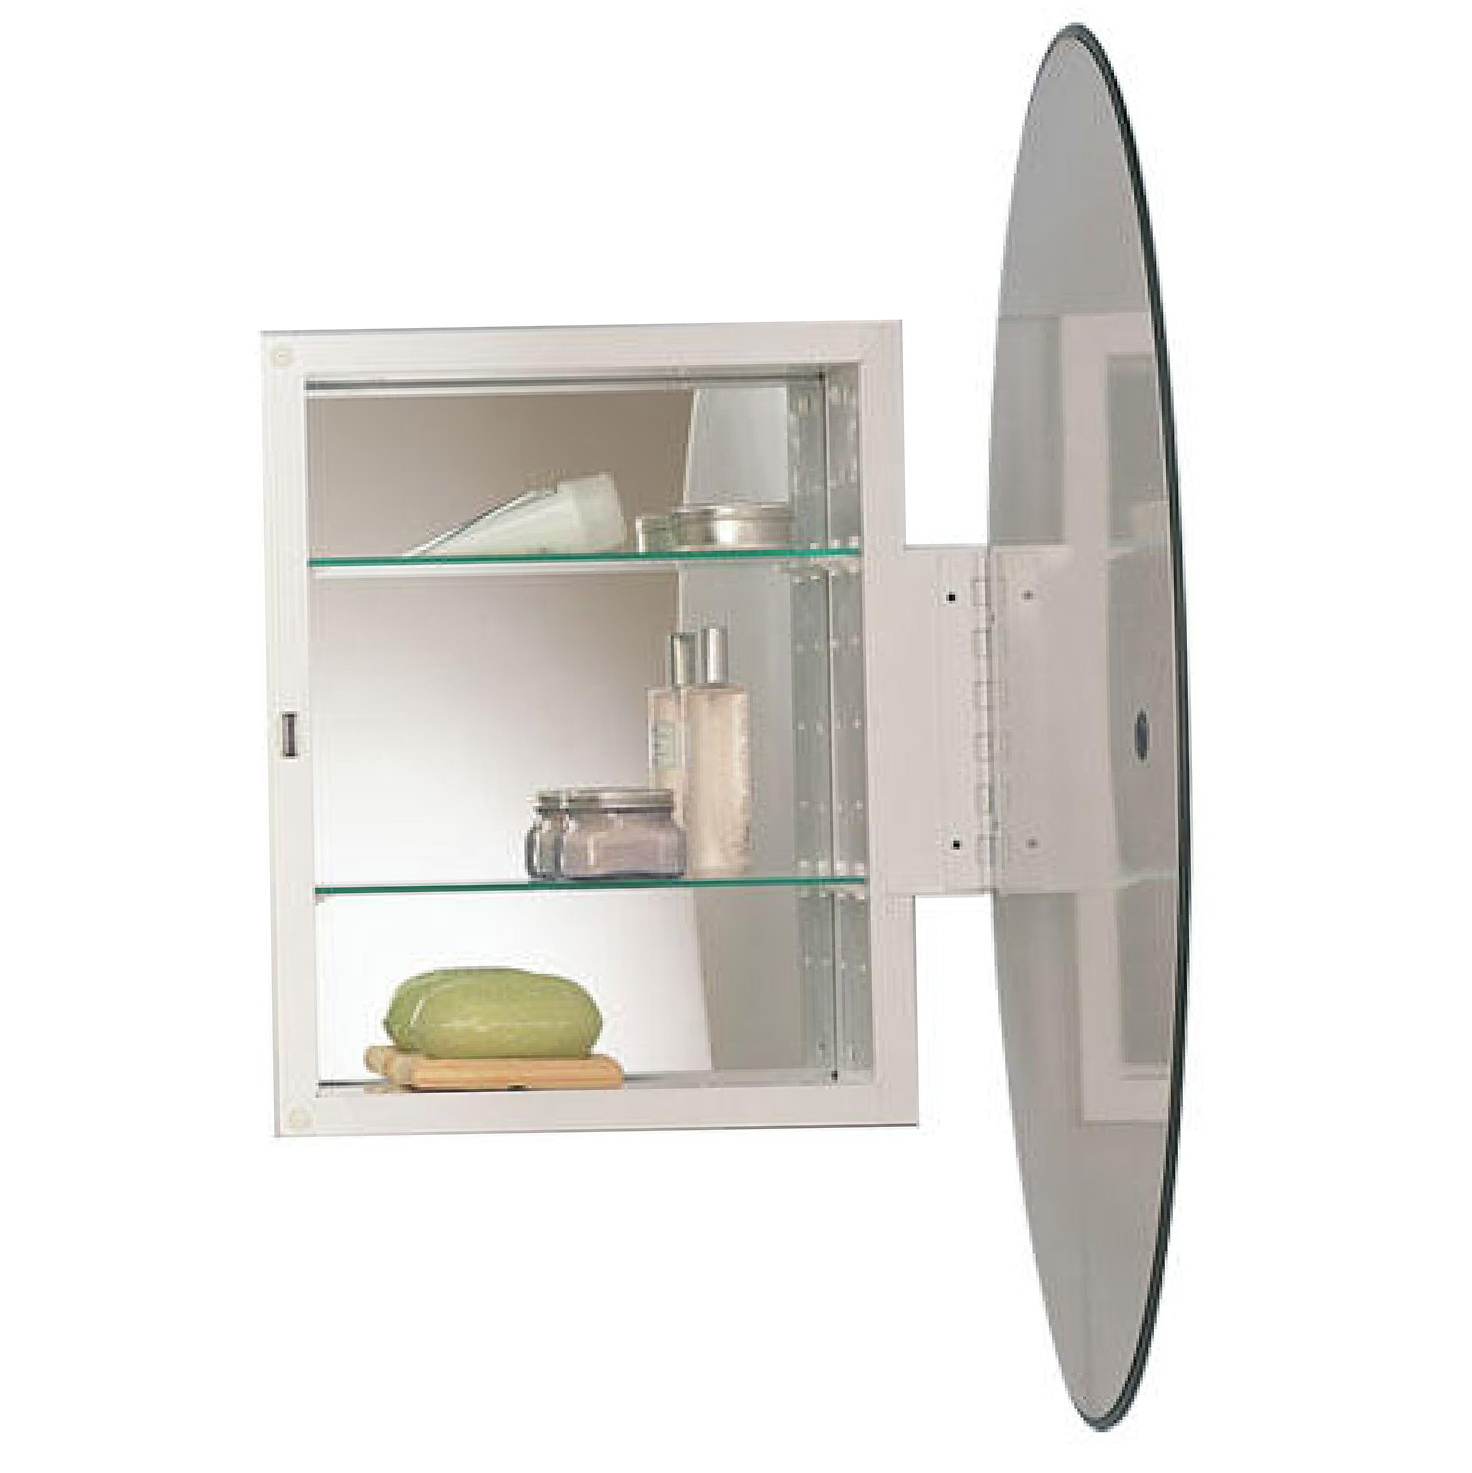 Oval mirrored medicine cabinet home design ideas Oval bathroom mirror cabinet